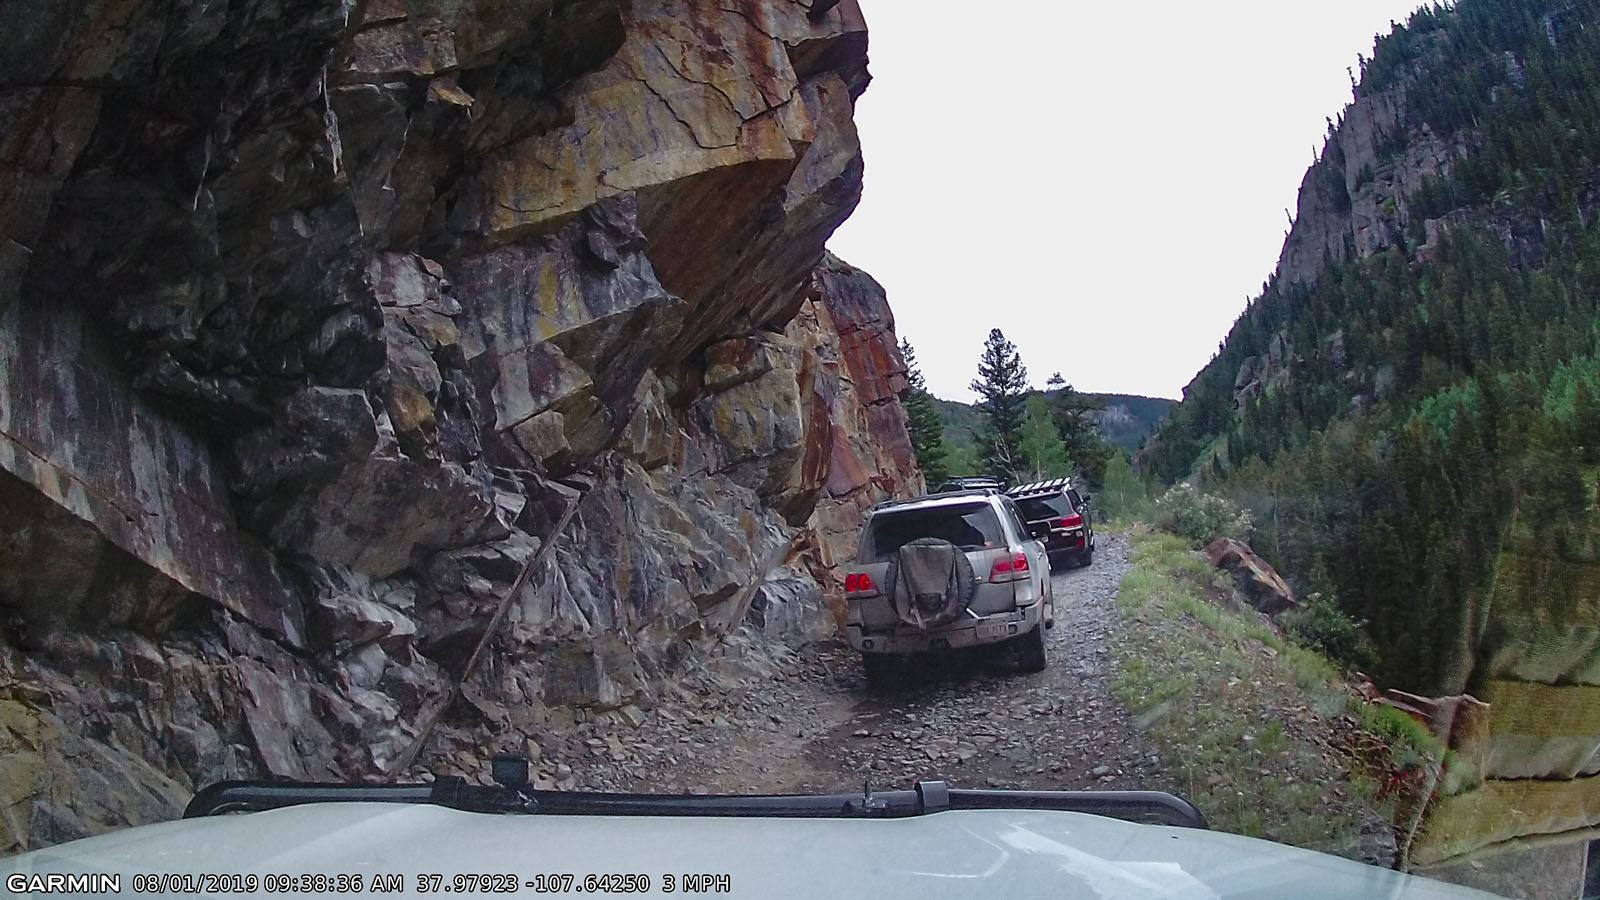 Garmin dash-cam shot showing the rock wall overhang and a peek at the downslope side.